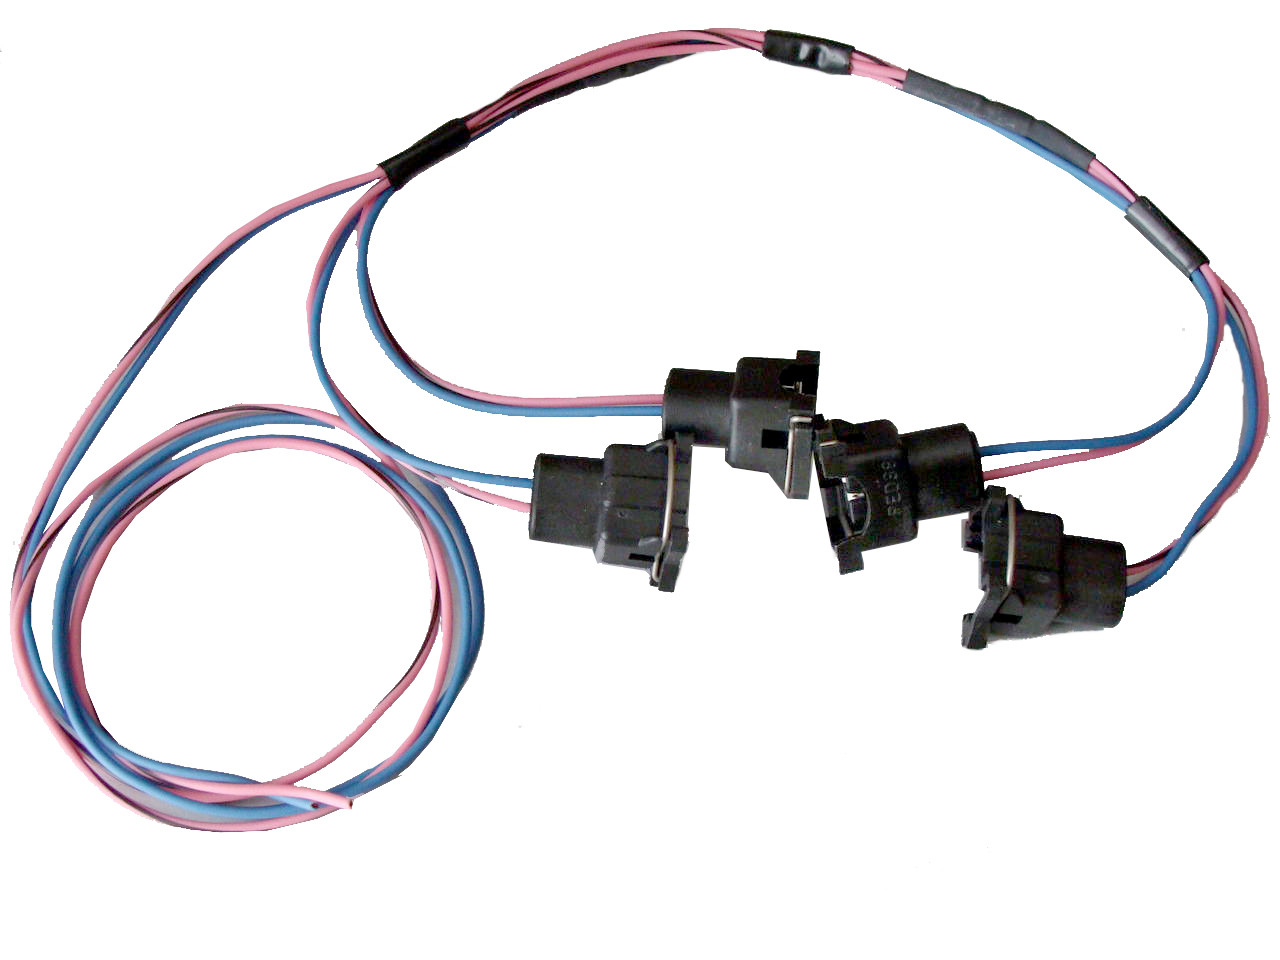 85 95 Tpi Lt1 Fuel Injector Connector Wiring Harness Assembly Rh Corvette Ls1 Together With 1985 Trans Am Diagram Image 1